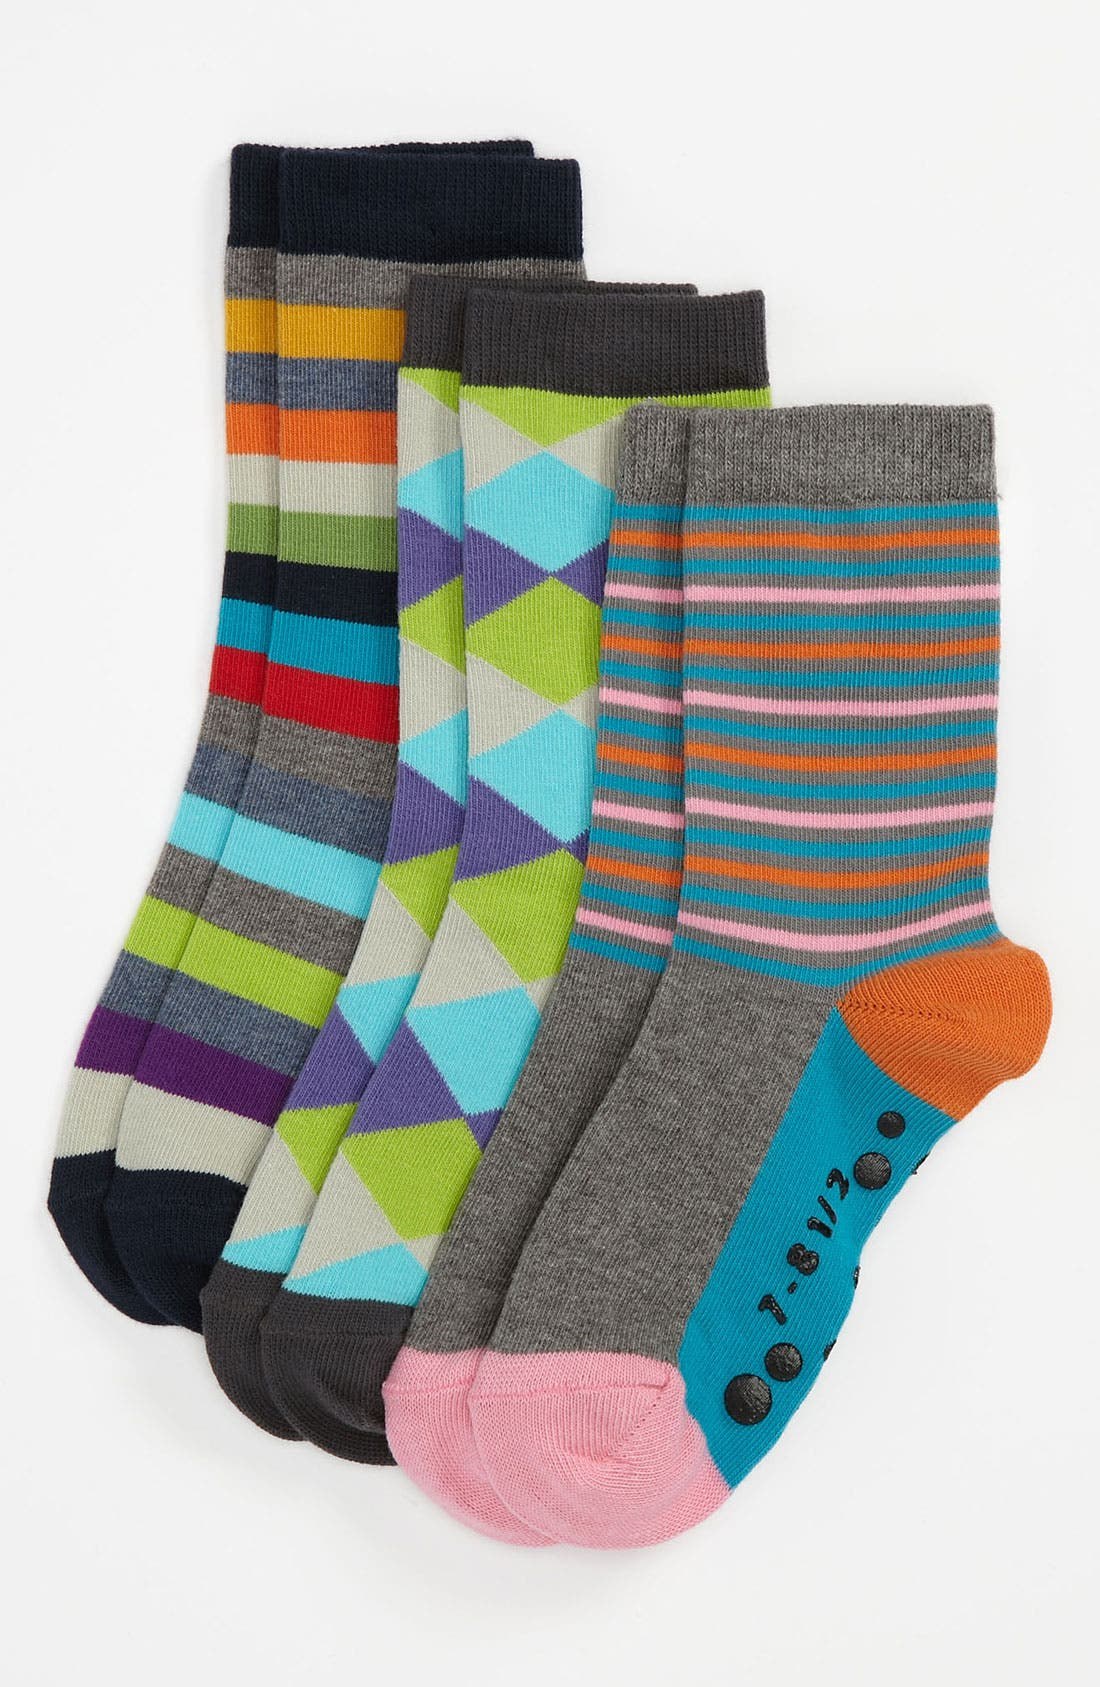 Main Image - Nordstrom 'Get Happy' Crew Socks (3-Pack) (Kids)